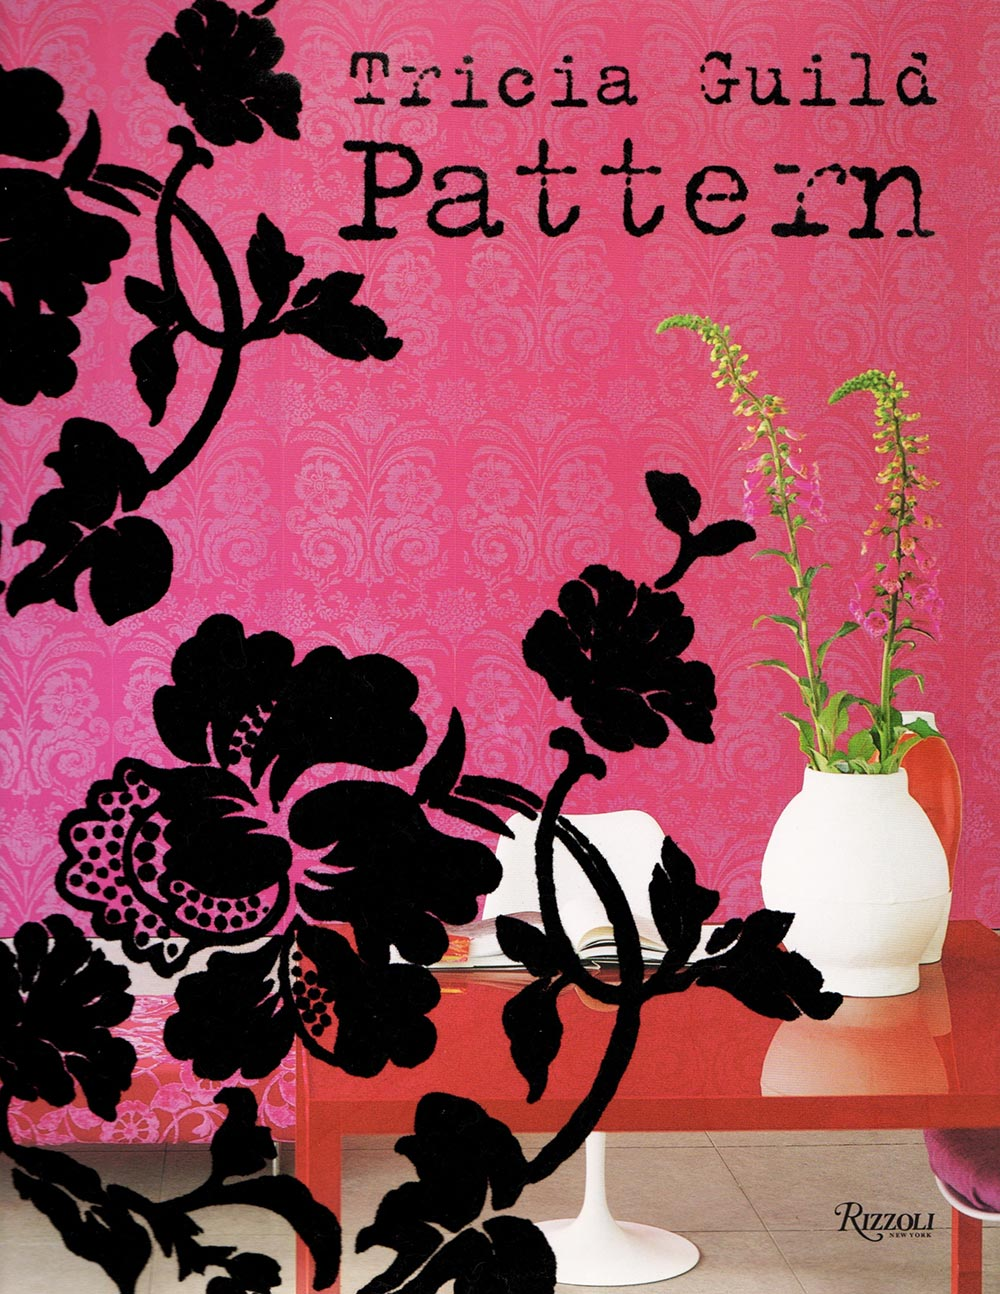 Pattern by Tricia Guild